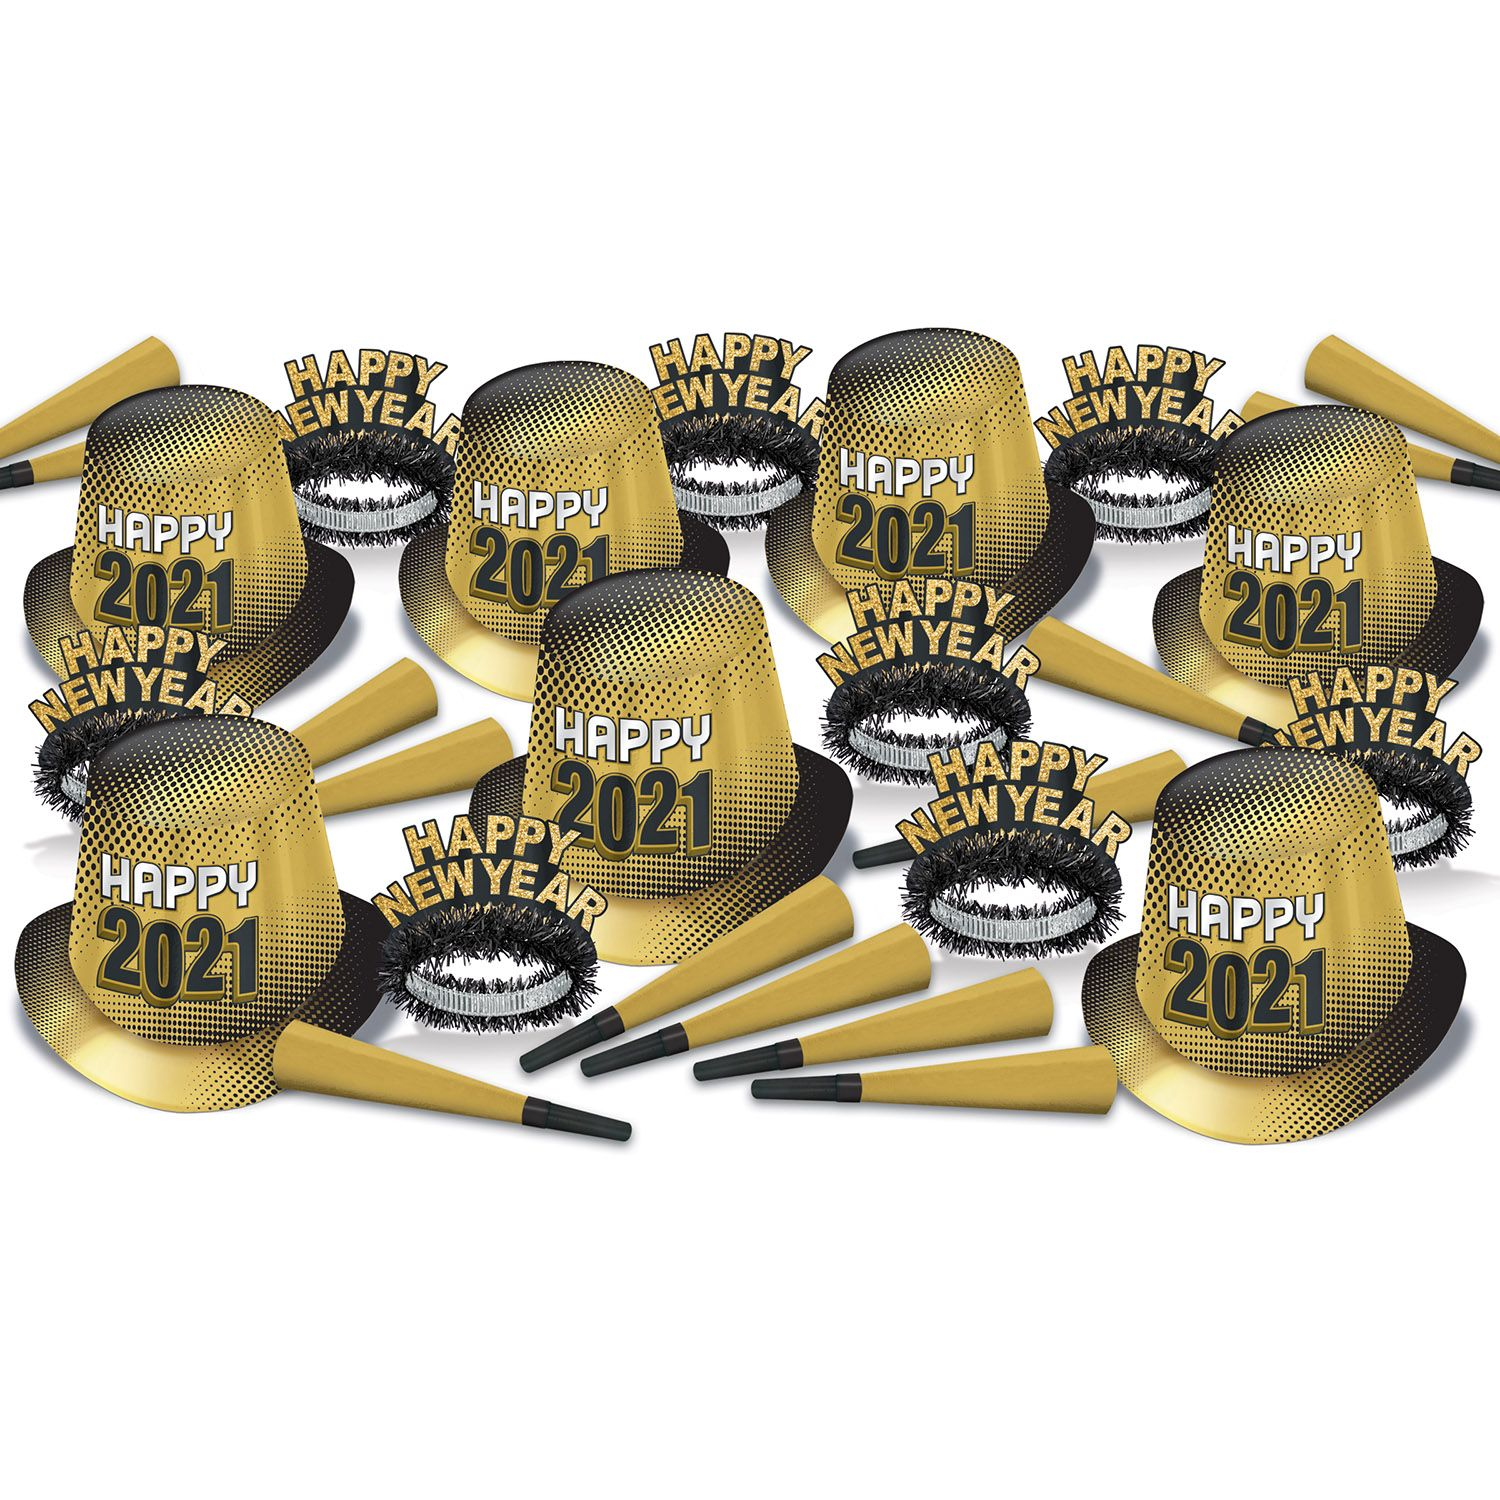 2021 New Year Assortment Party Kit for 50 (gold)